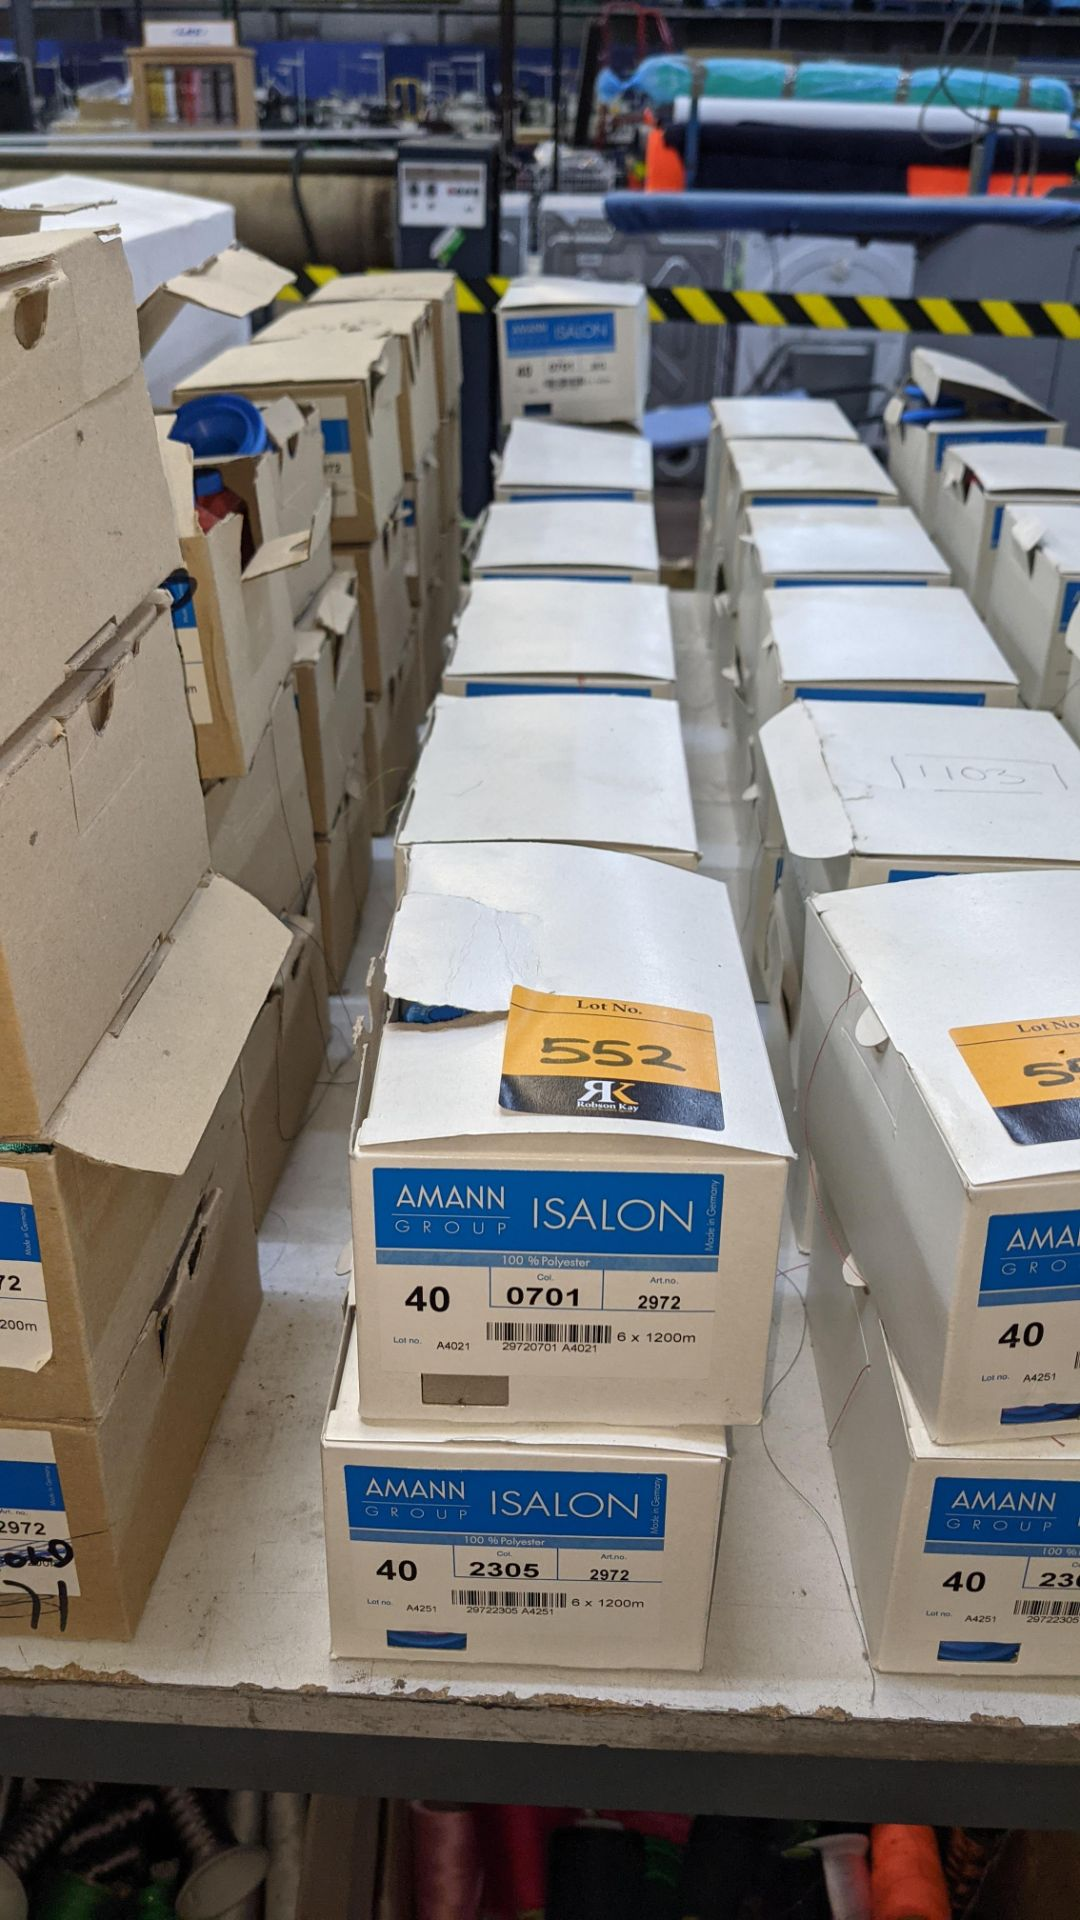 13 boxes of Amann Group ISALON 40 polyester embroidery thread - Image 2 of 10